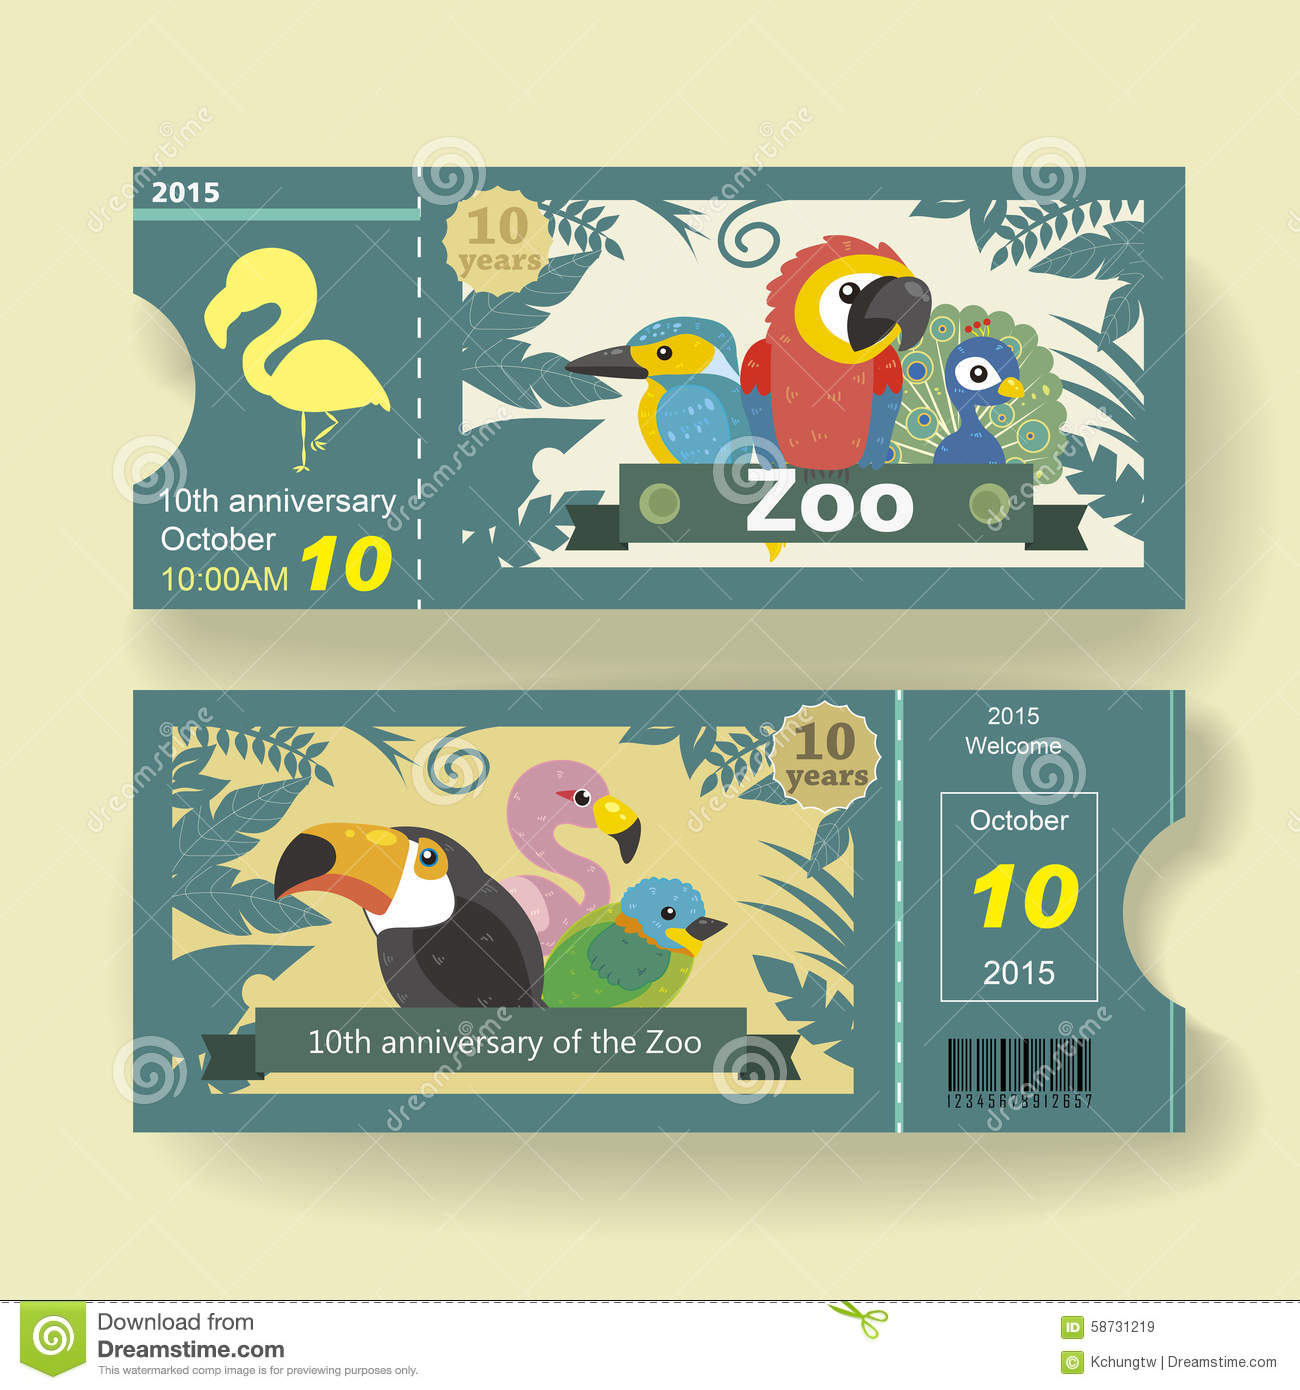 Zoo Invitations is amazing invitation design